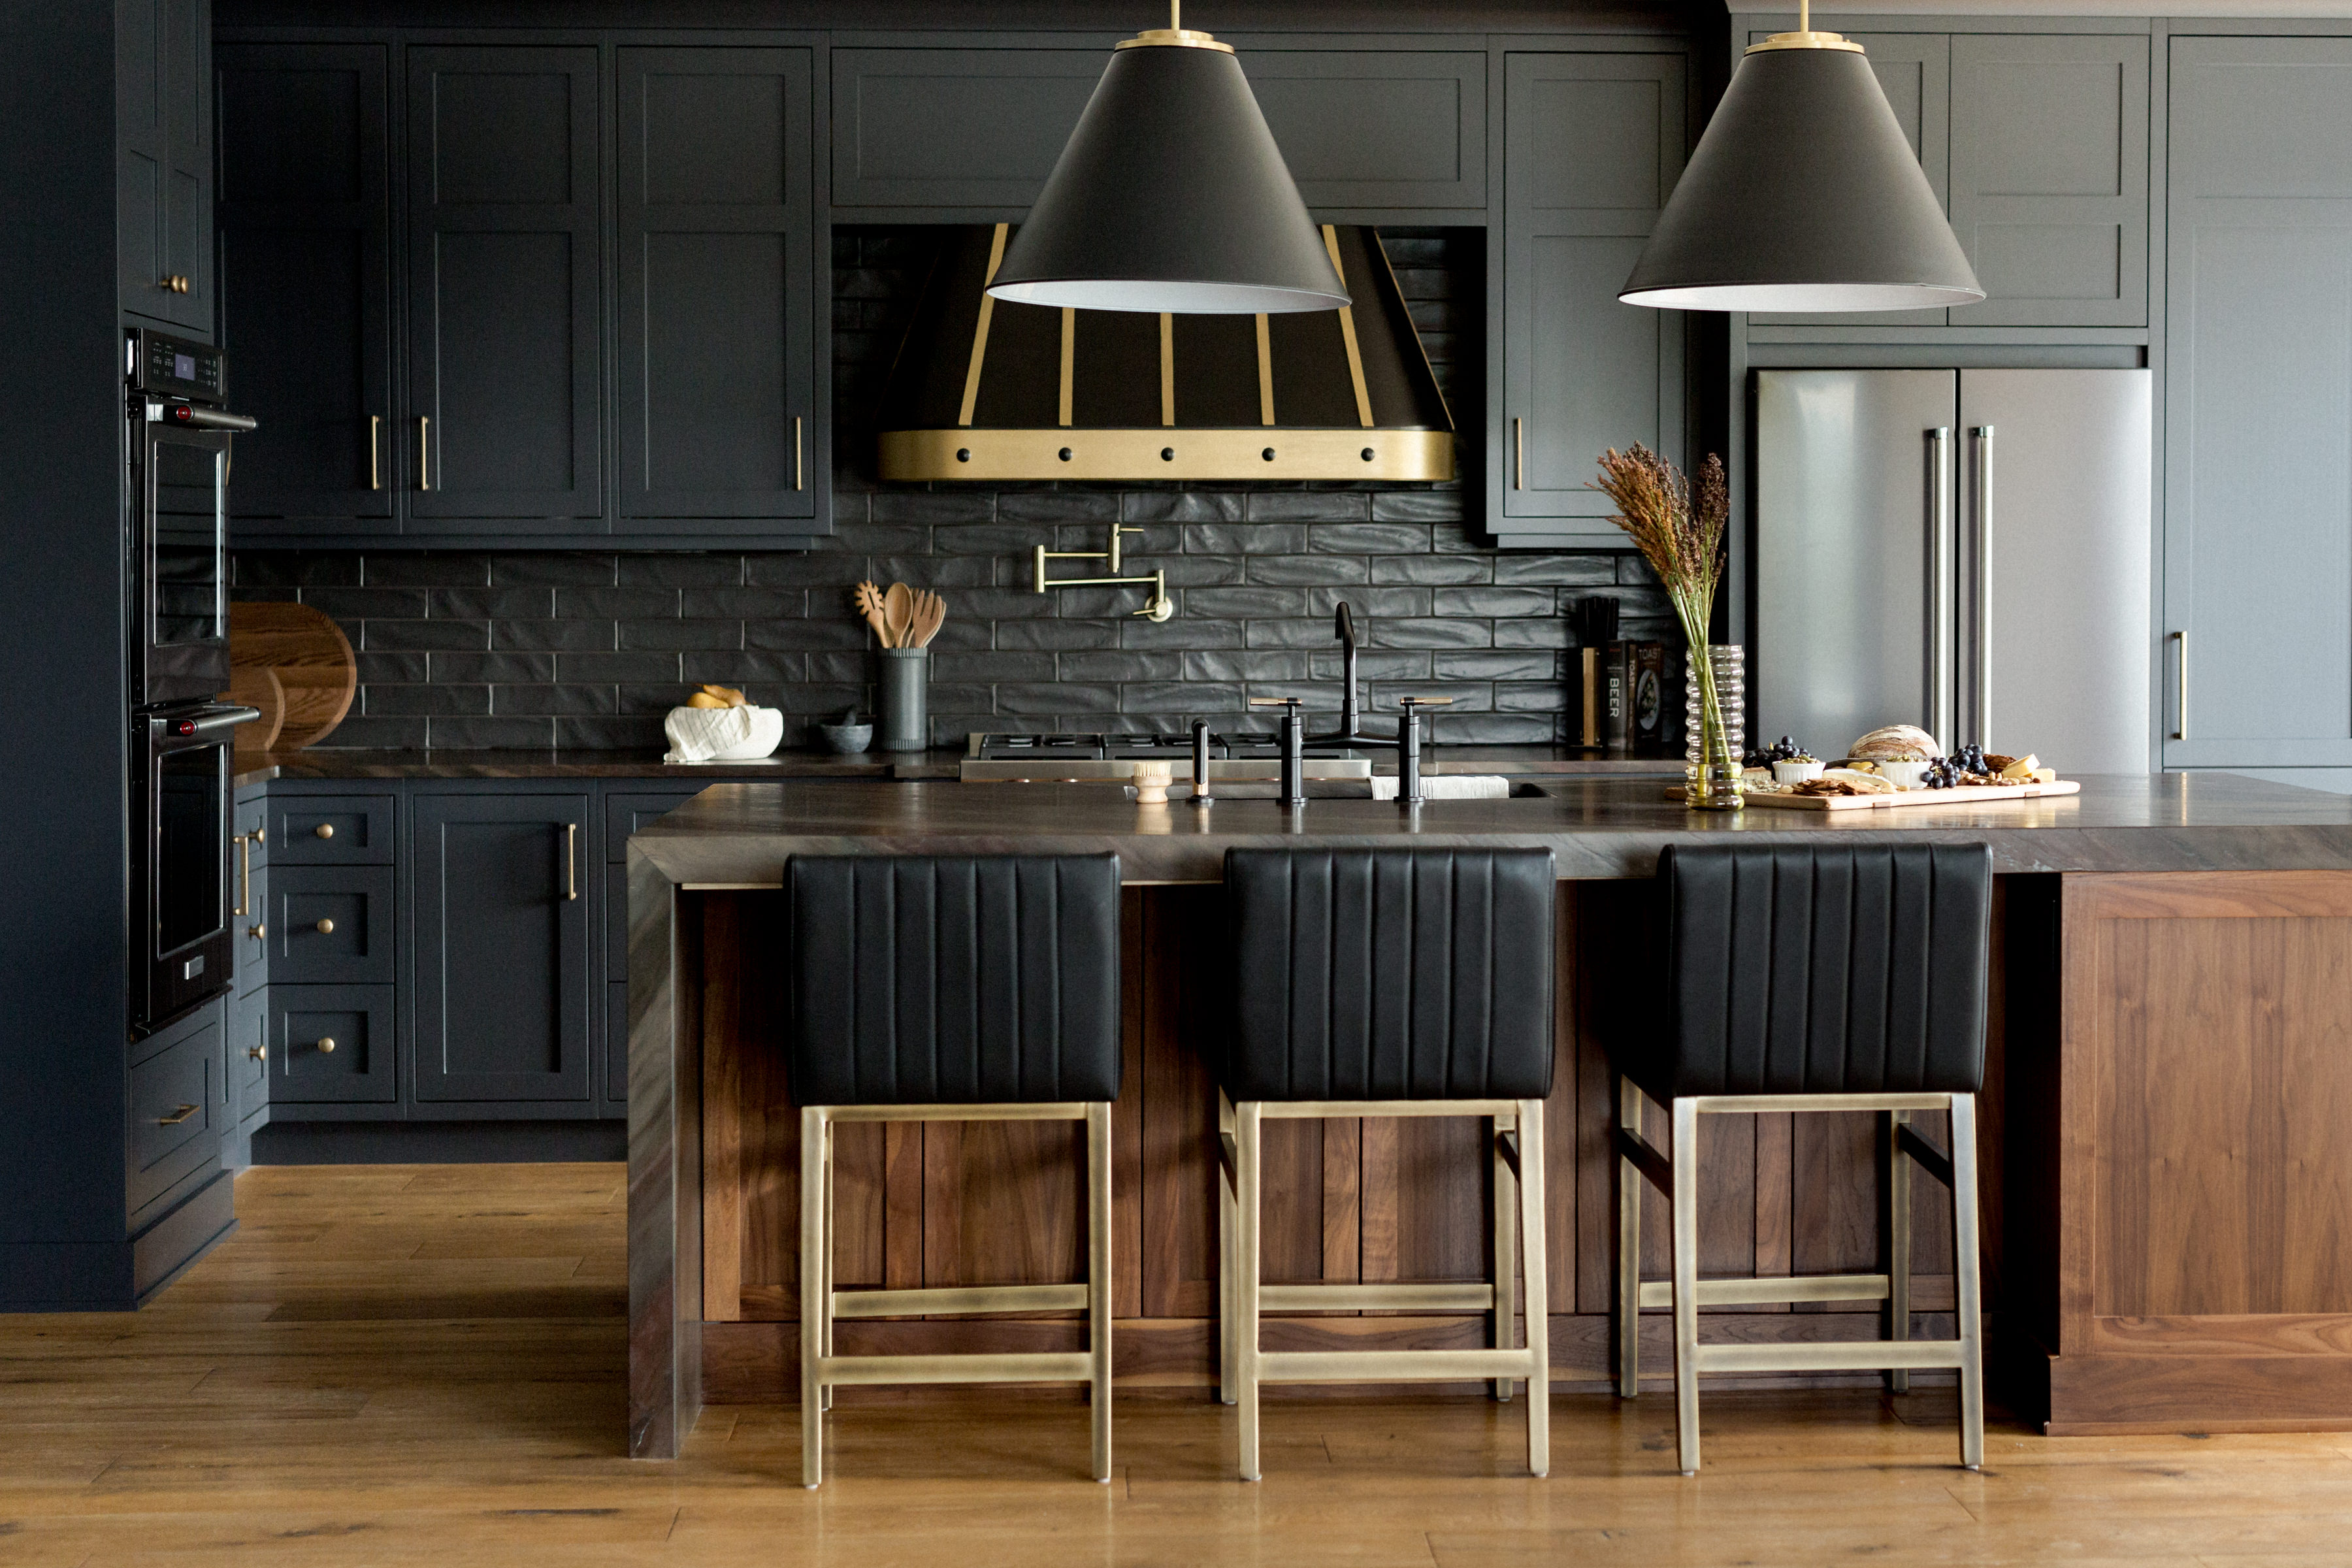 Dark and Moody Bachelor Kitchen